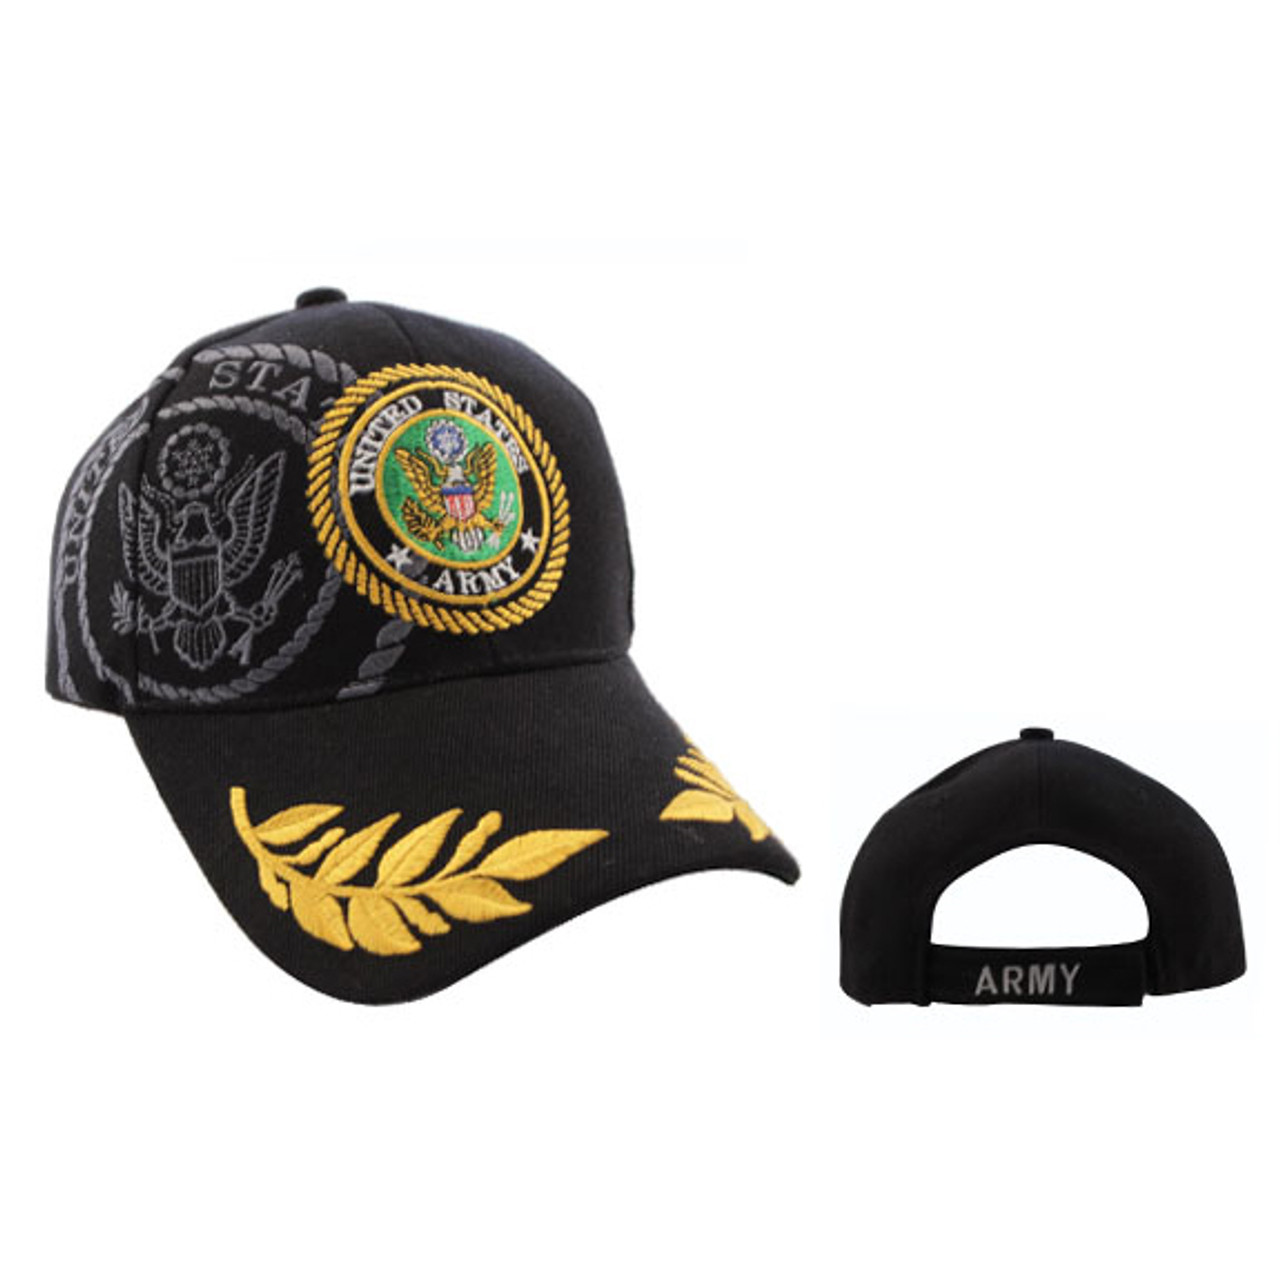 Wholesale Baseball Cap C577 (1 pc.) United States Army Black